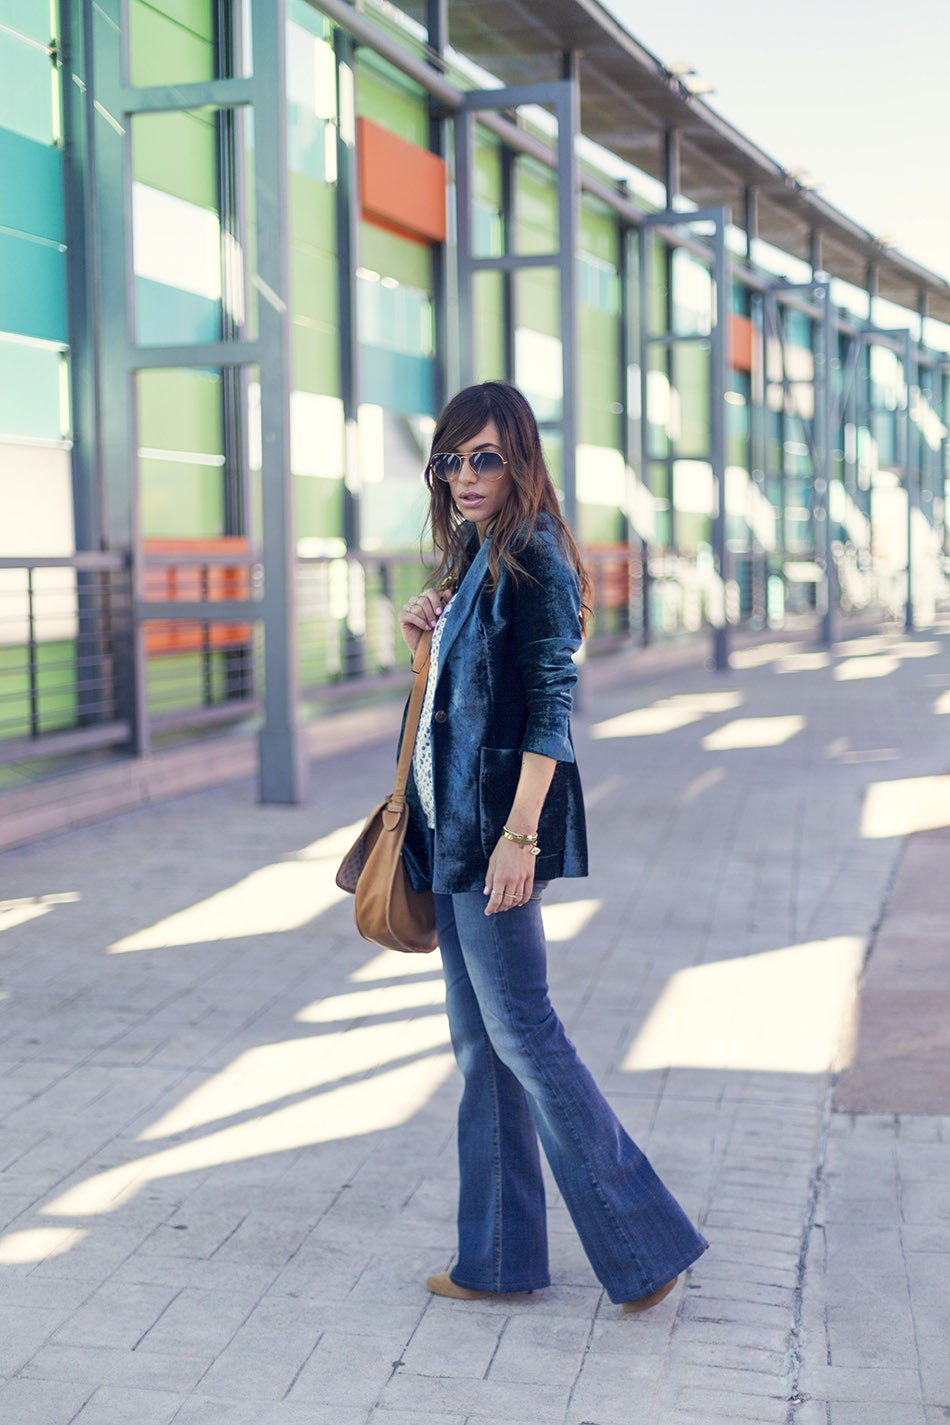 street style march outfits review bárbara crespo 08